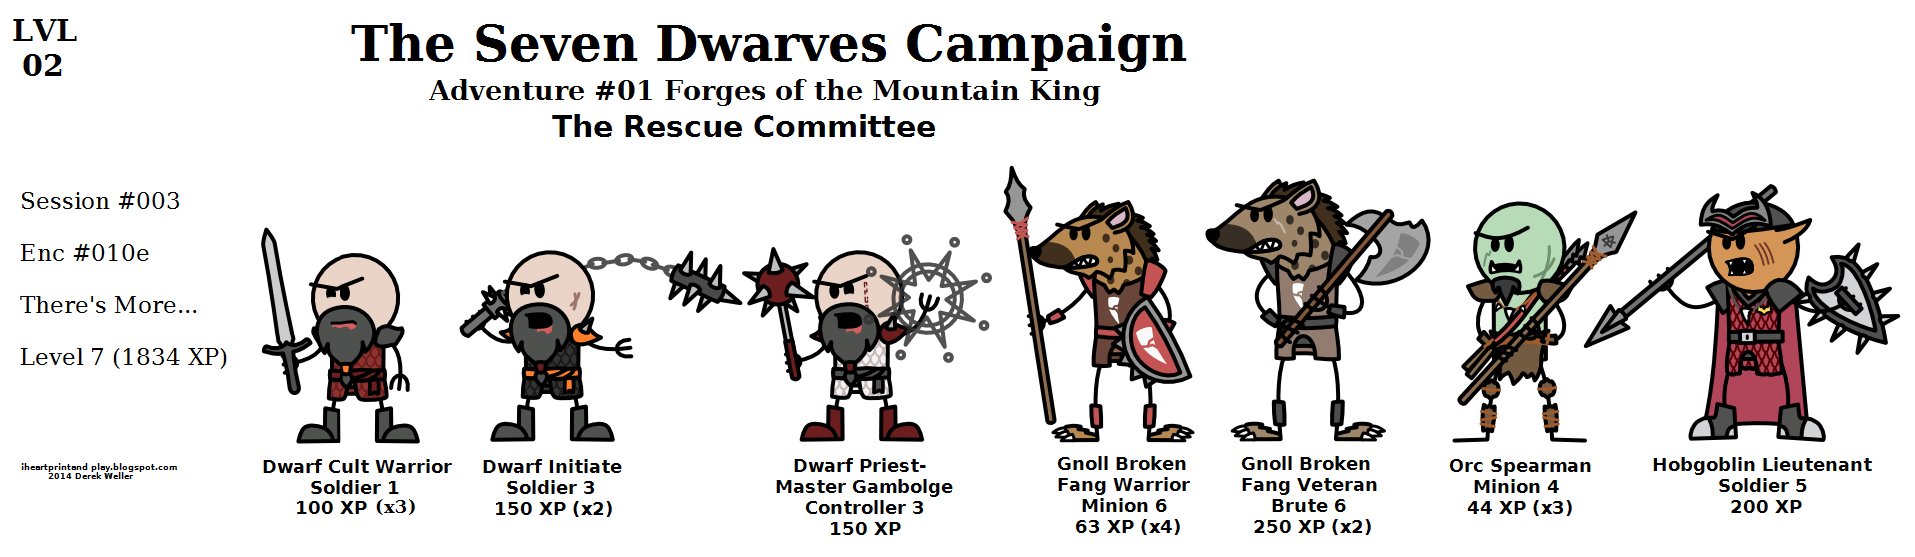 7Dwarves__004.010e_More....png